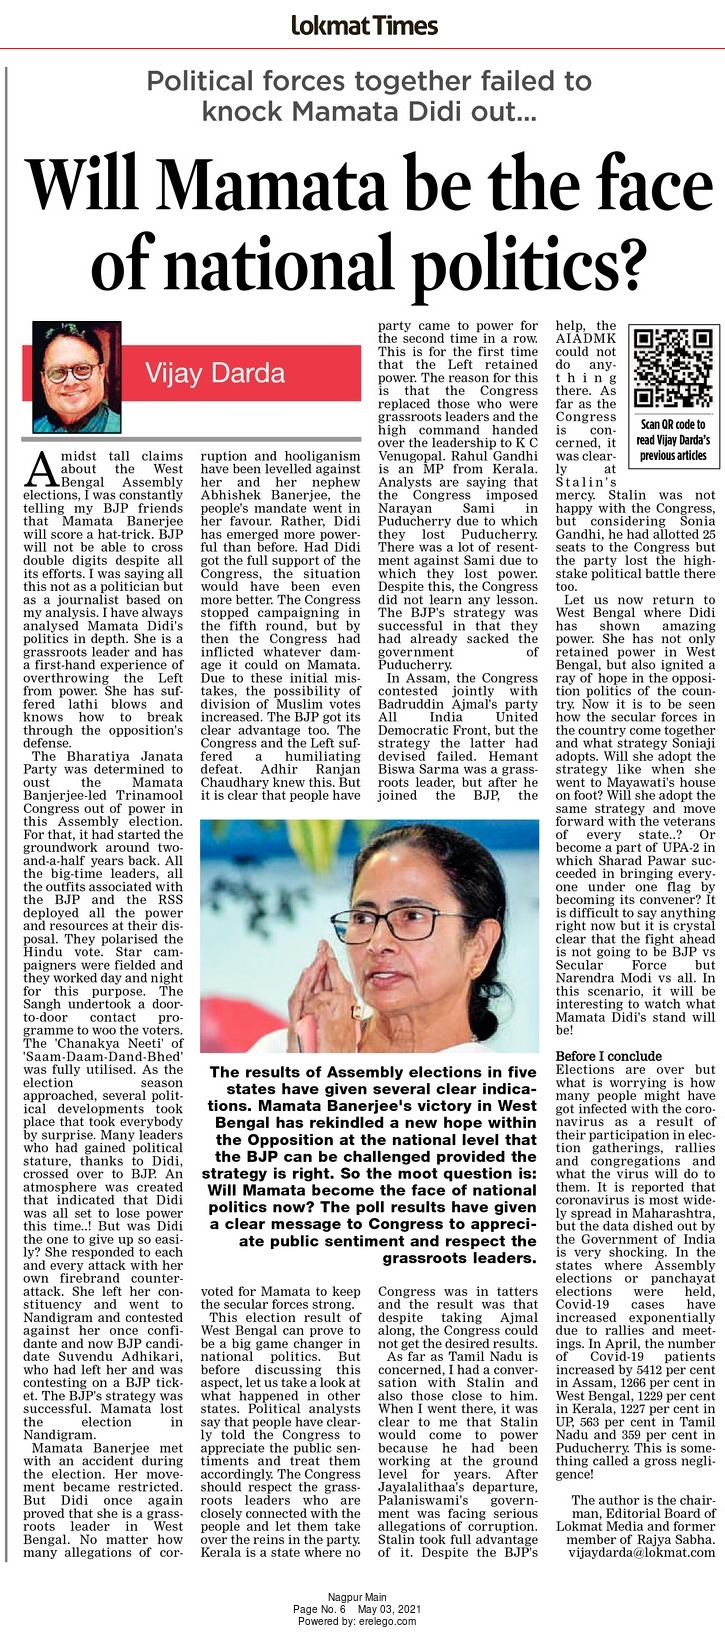 Will Mamata be the face of national politics?